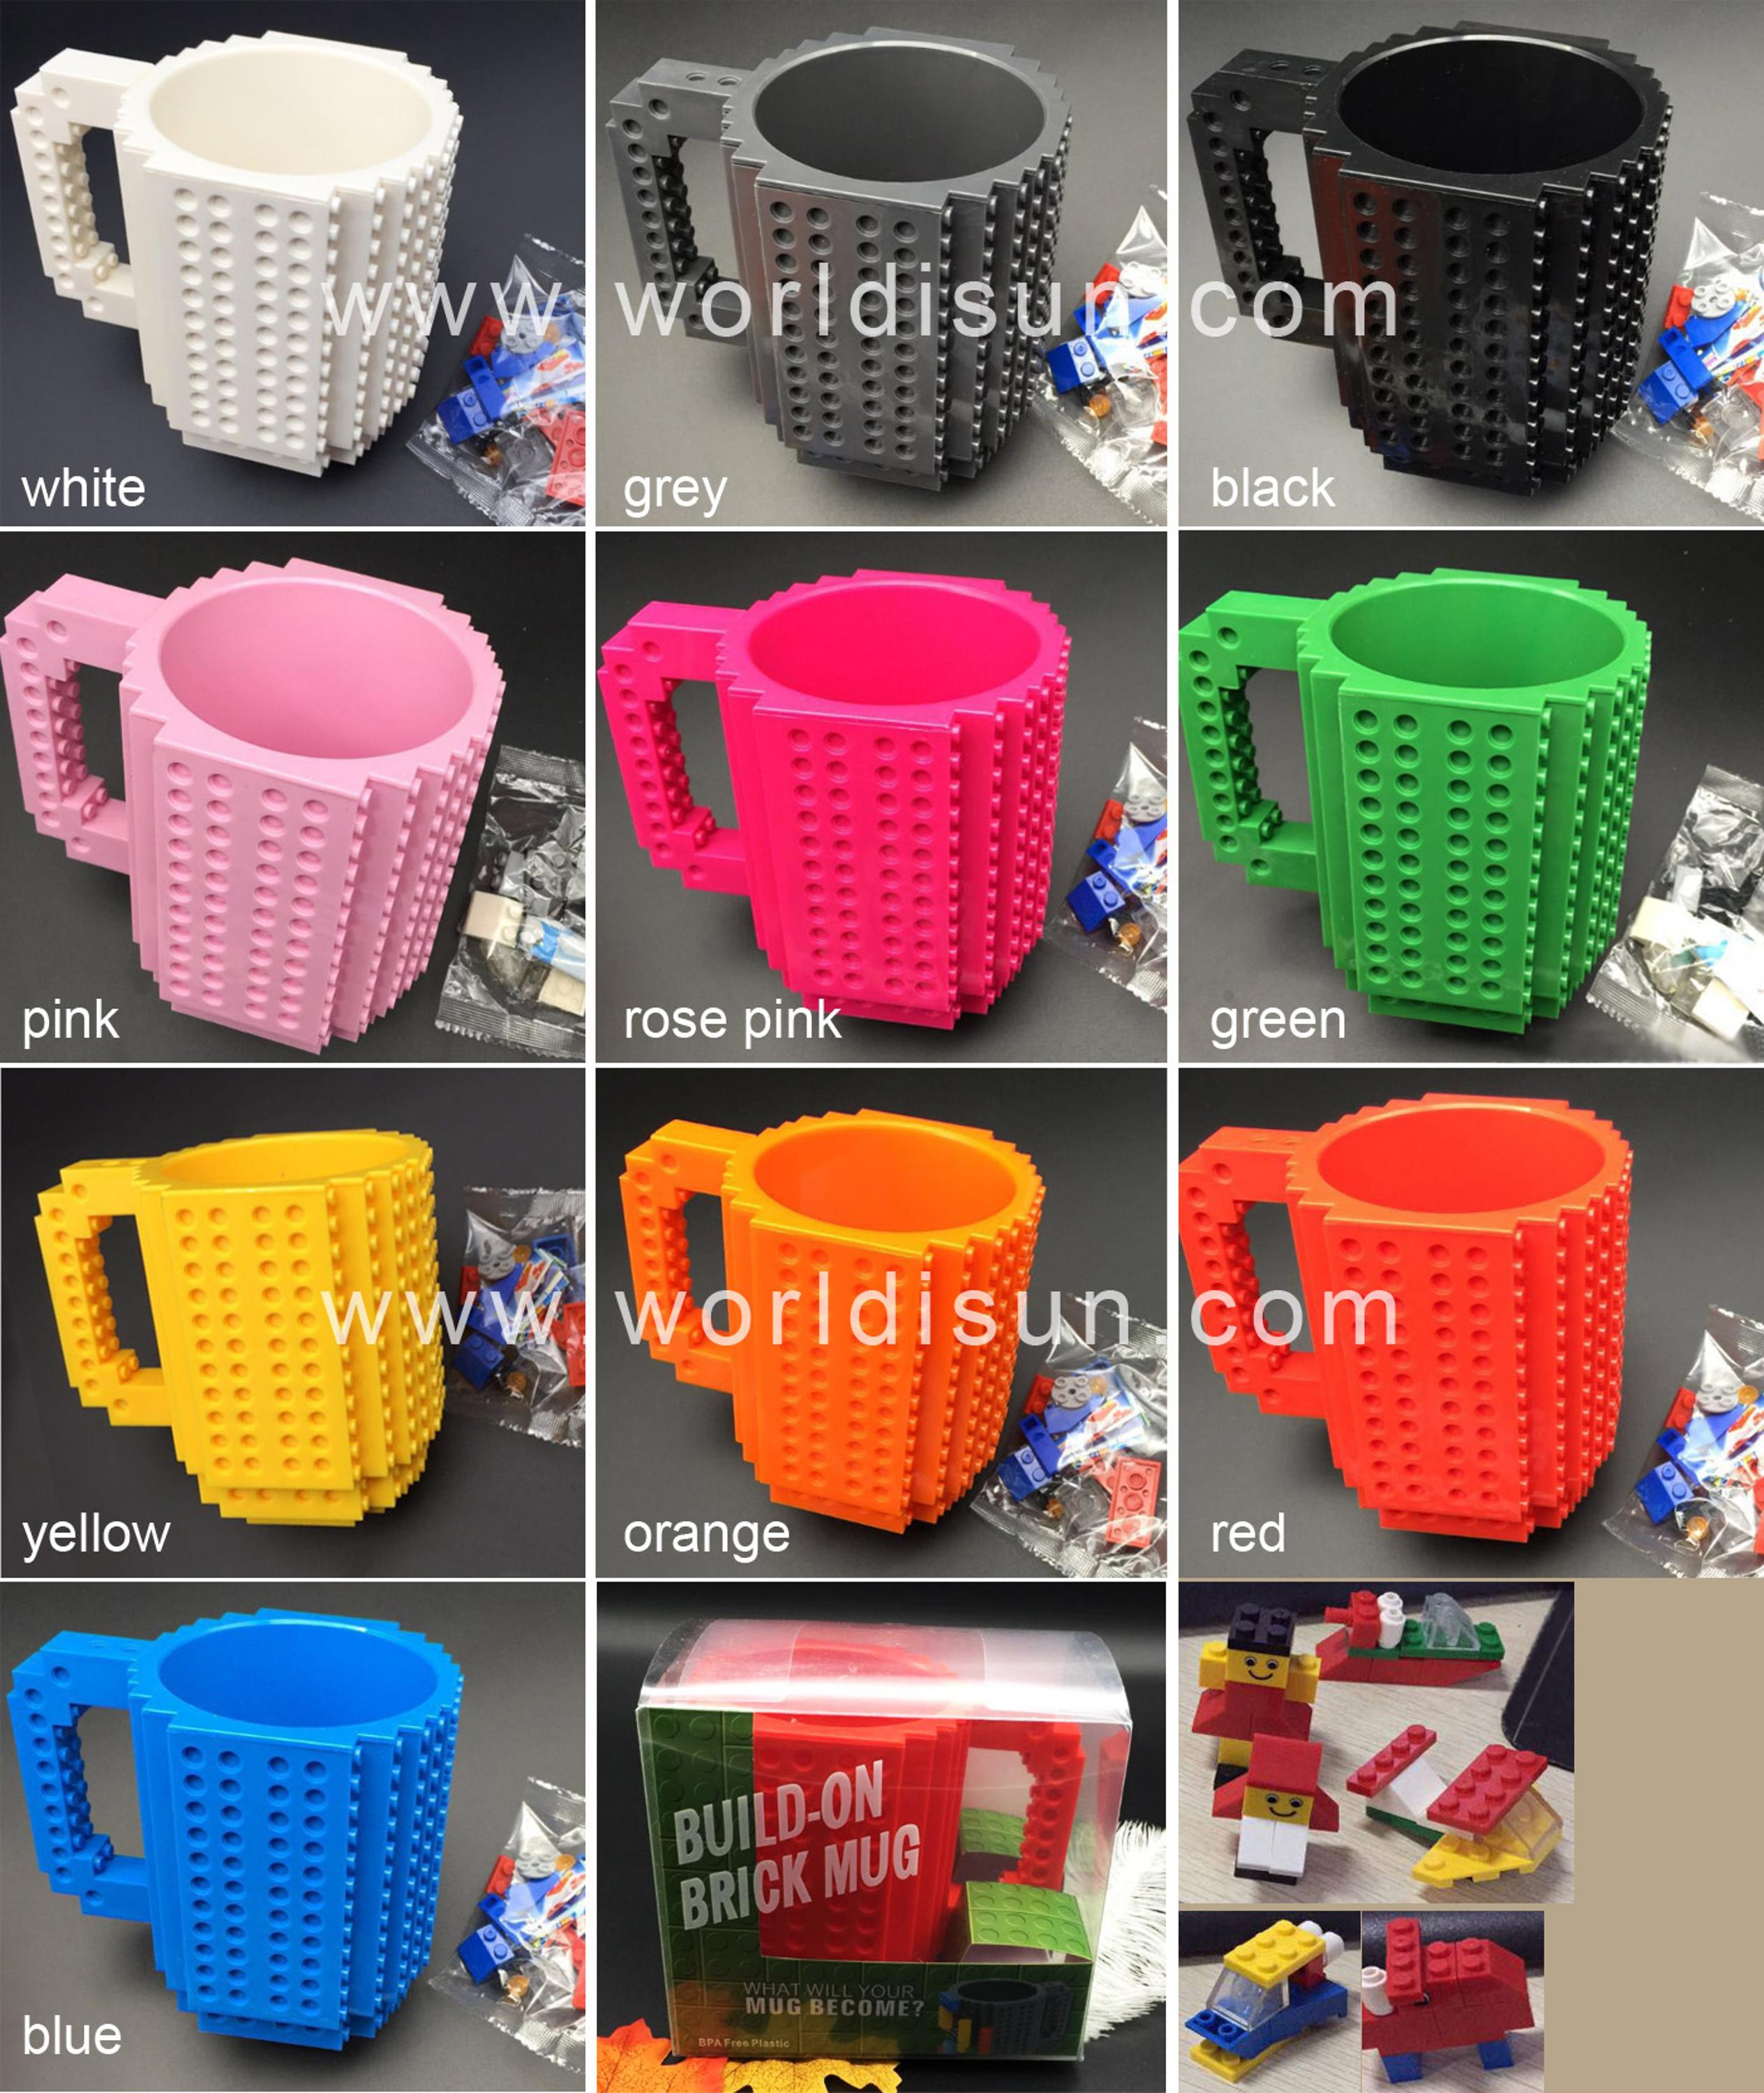 Build-on brick mug coffee cup diy type plastic lego mug cup christmas gift items